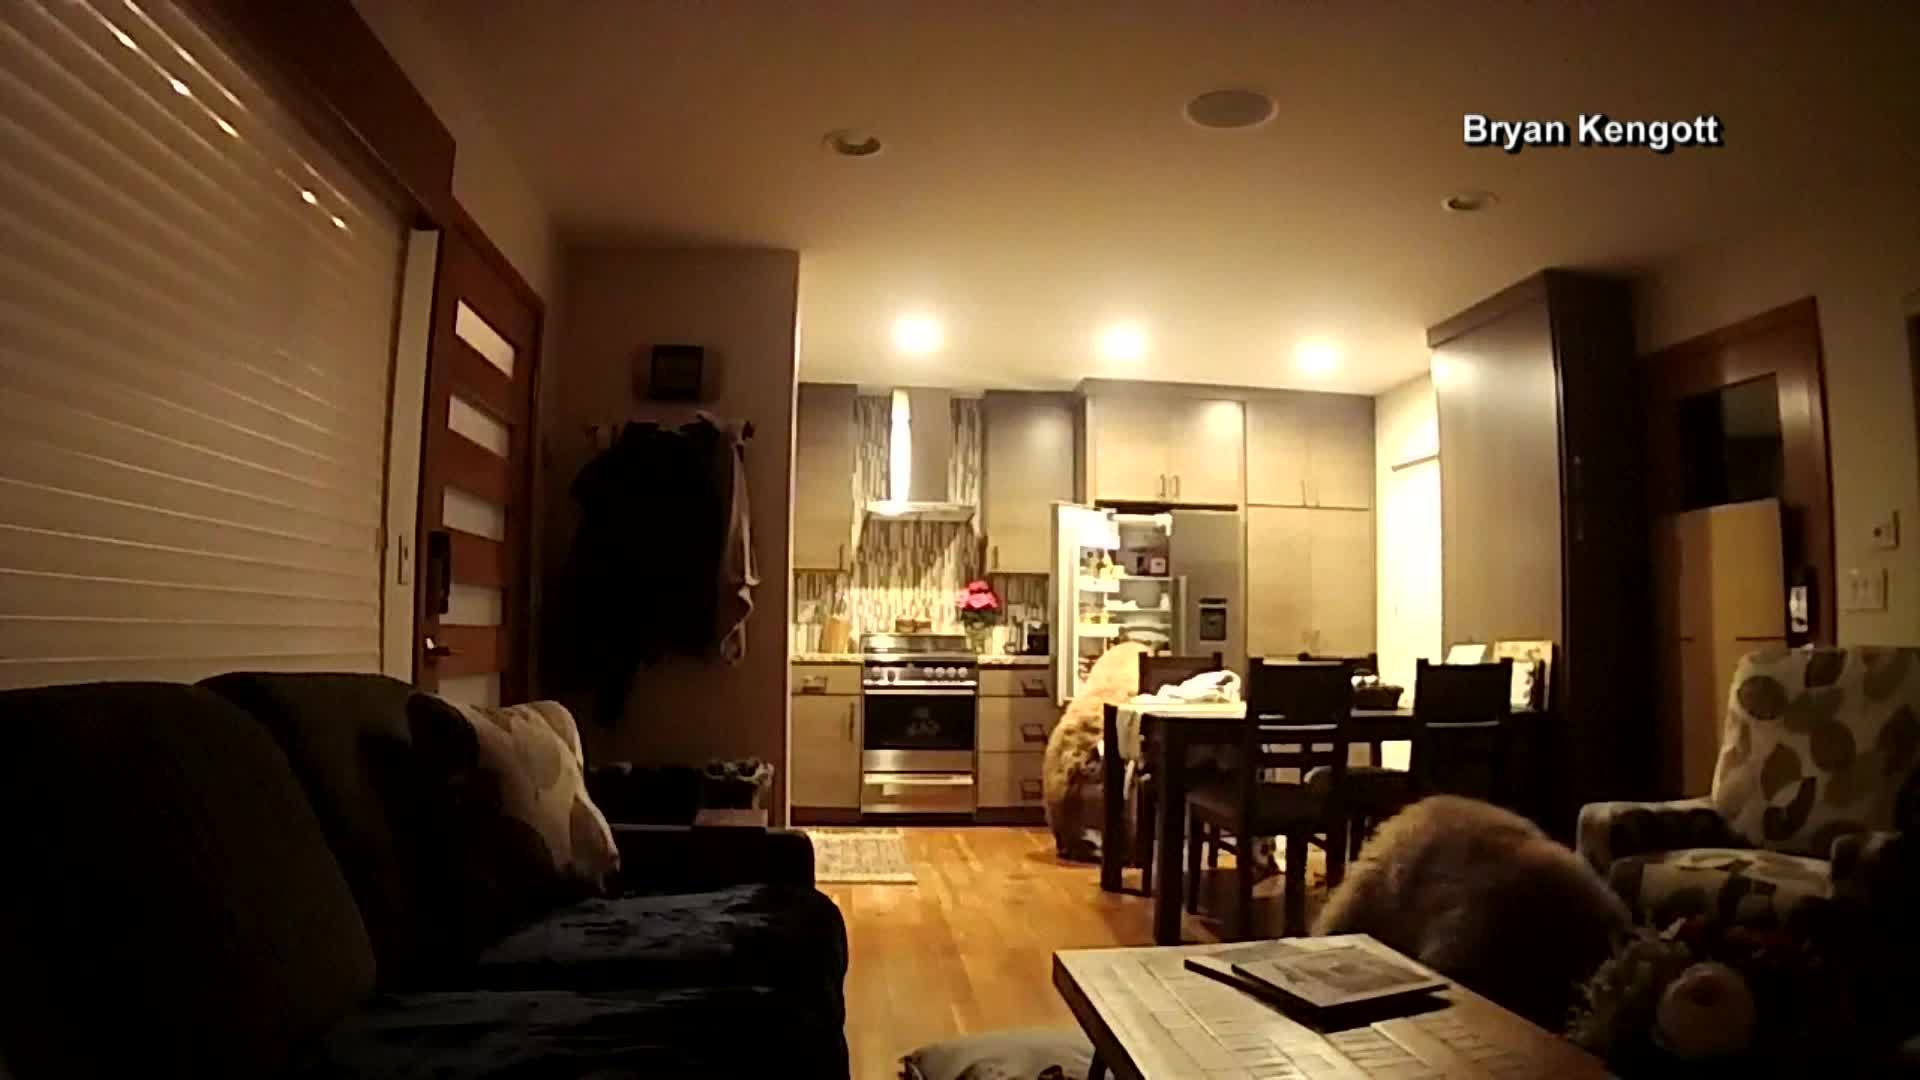 Bears caught on camera looking for bare necessities inside home